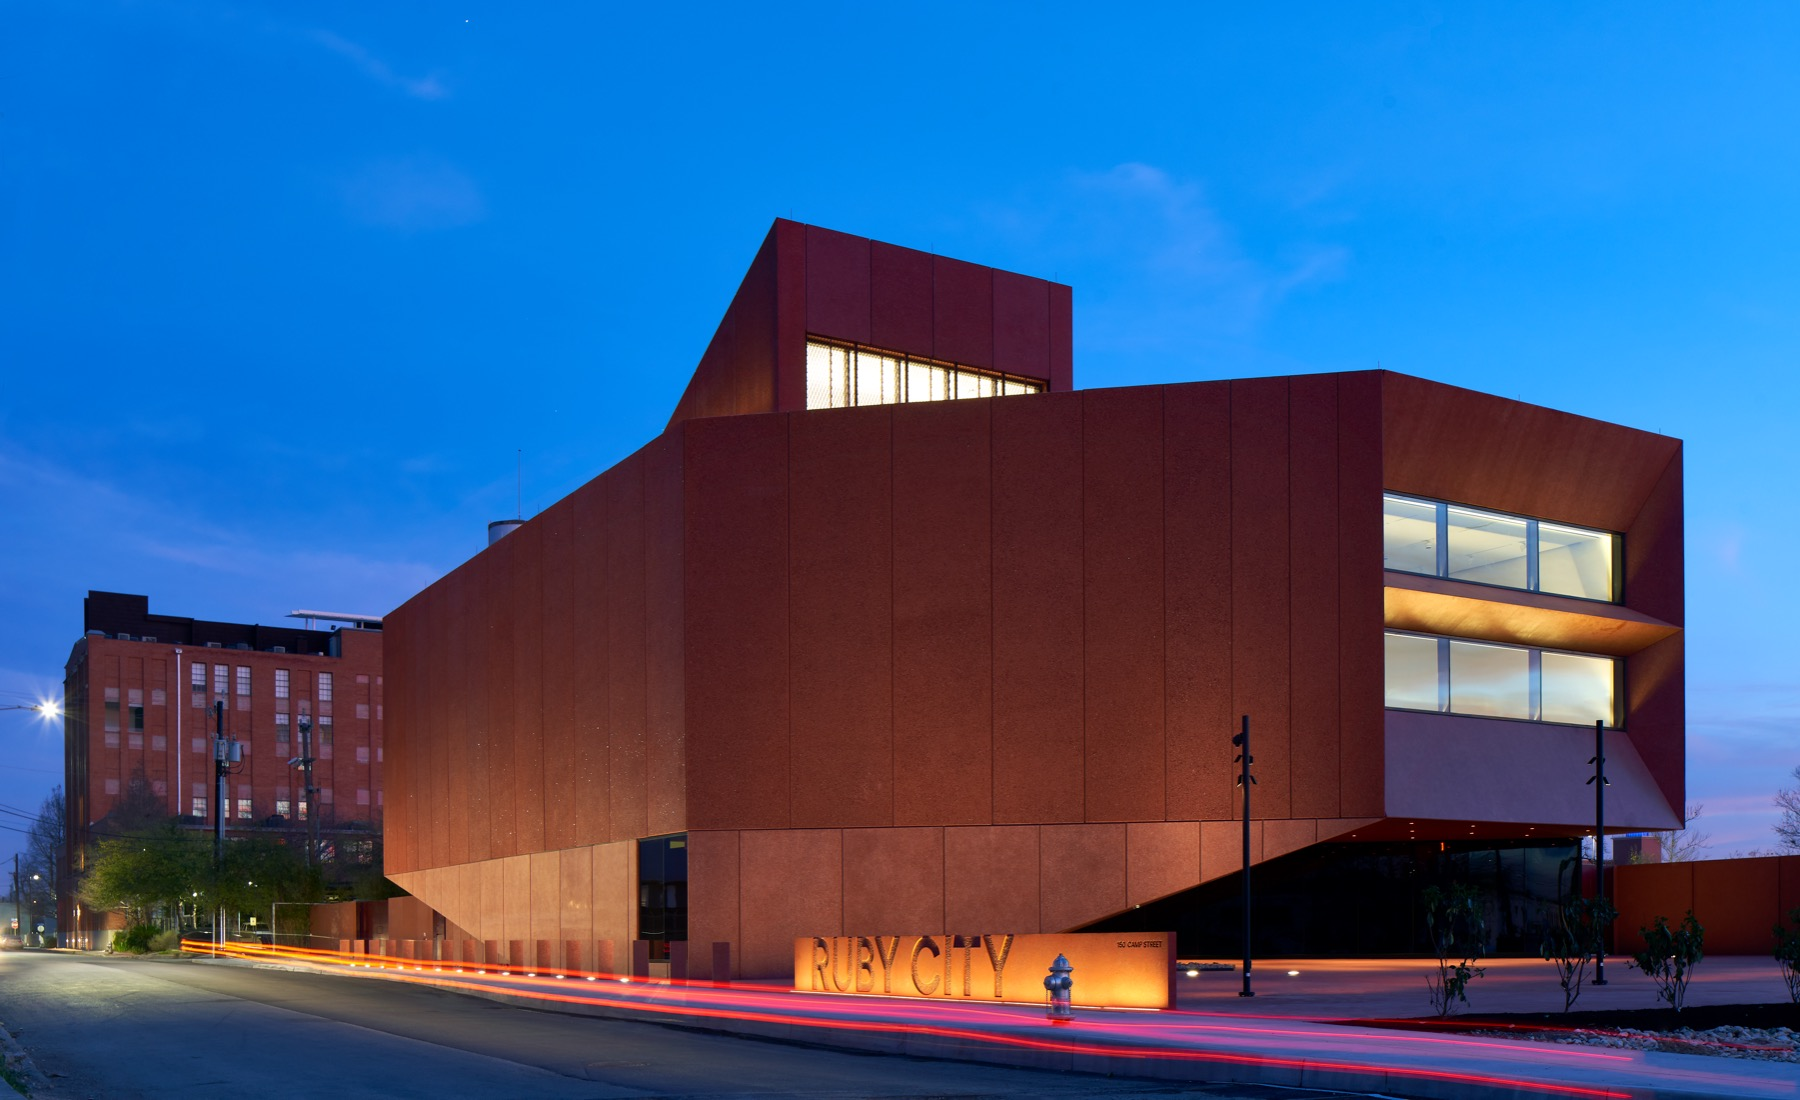 Ruby City Museum By David Adjaye